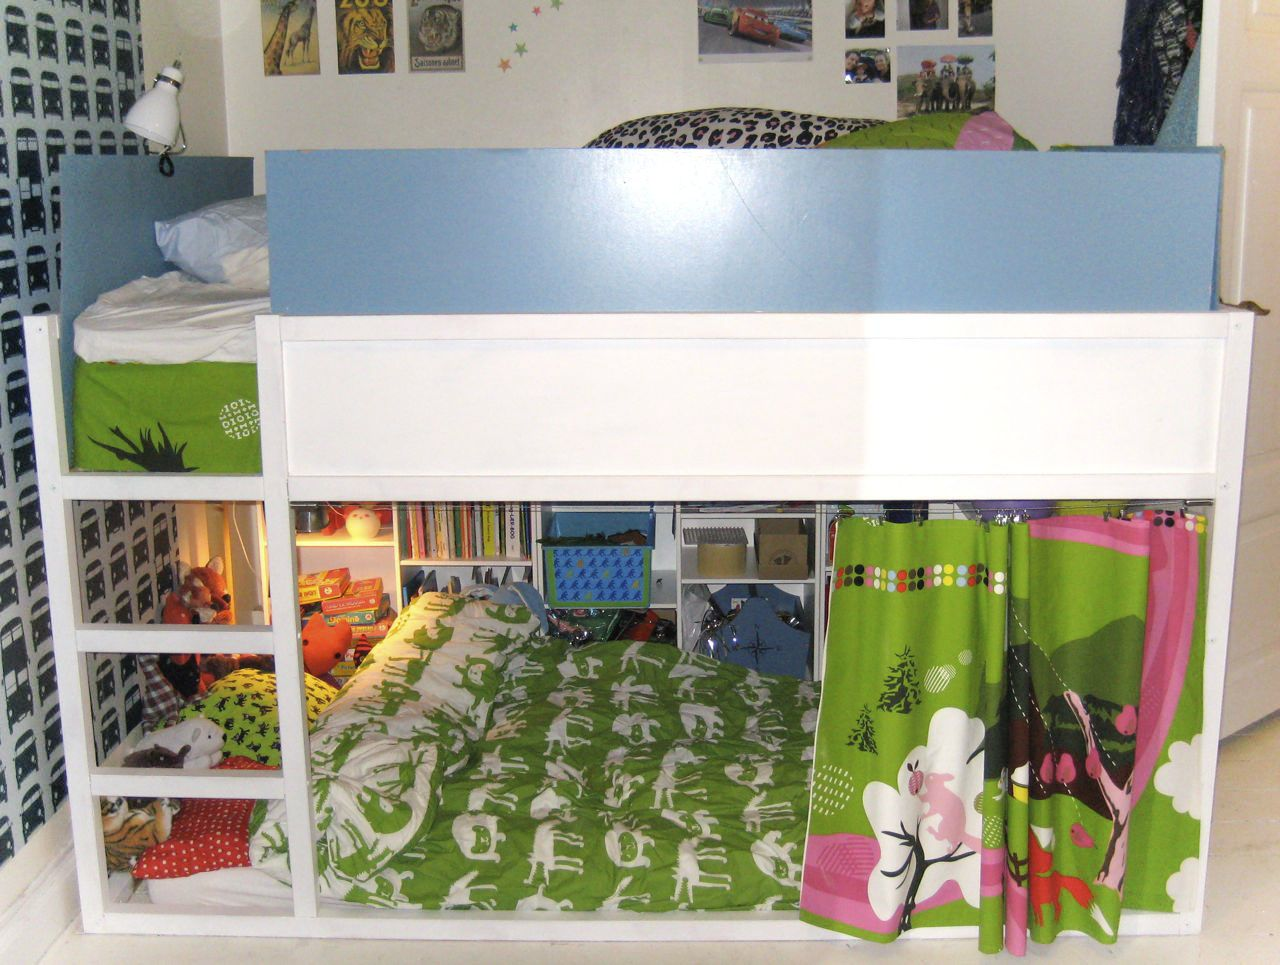 Kura ikea on pinterest ikea kura bed kura bed and ikea kura Ikea hacking